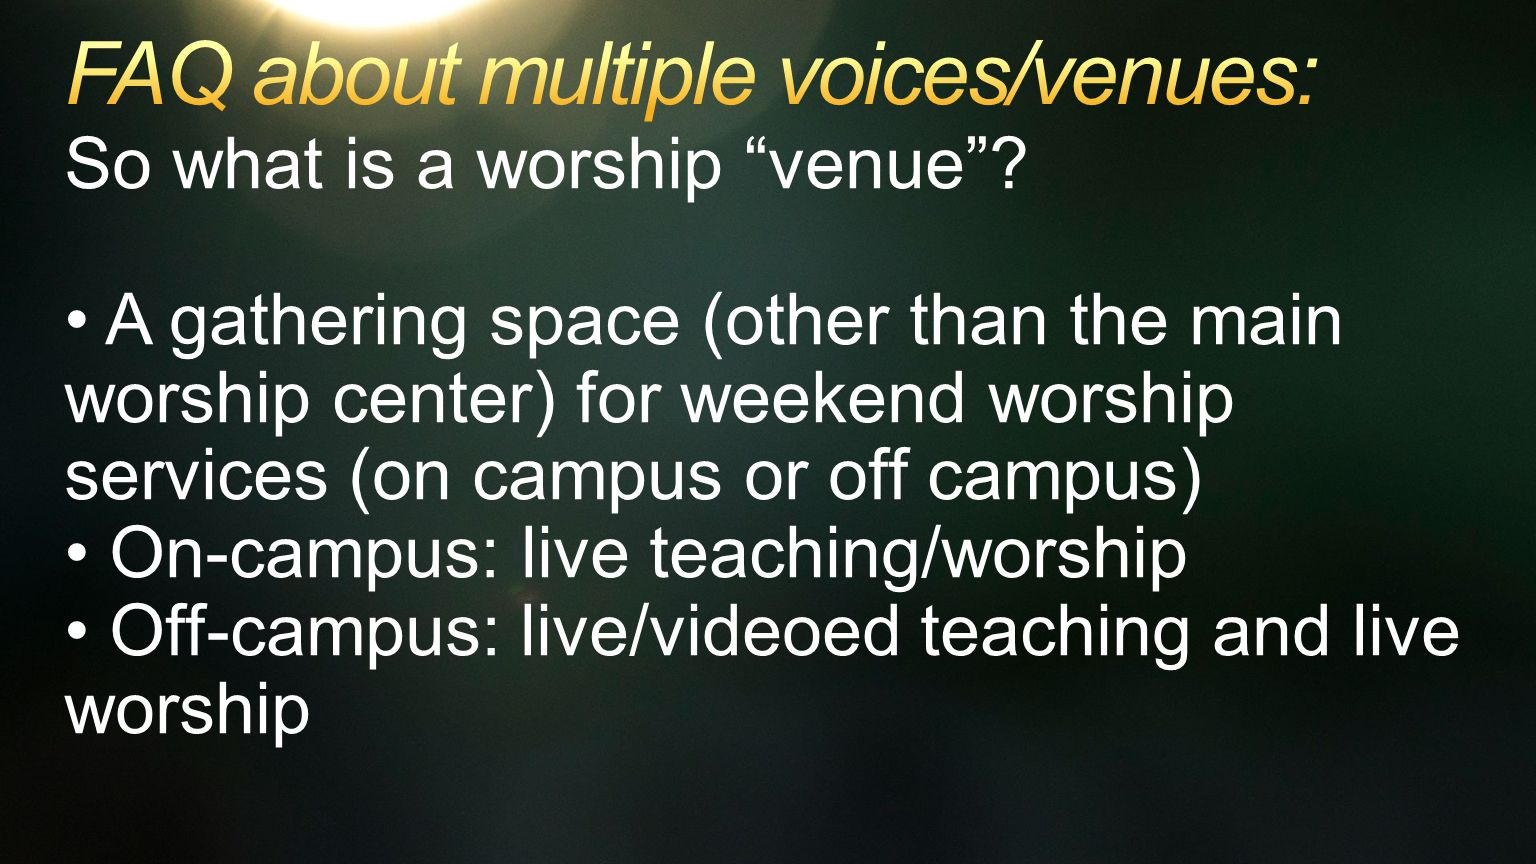 So what is a worship venue .